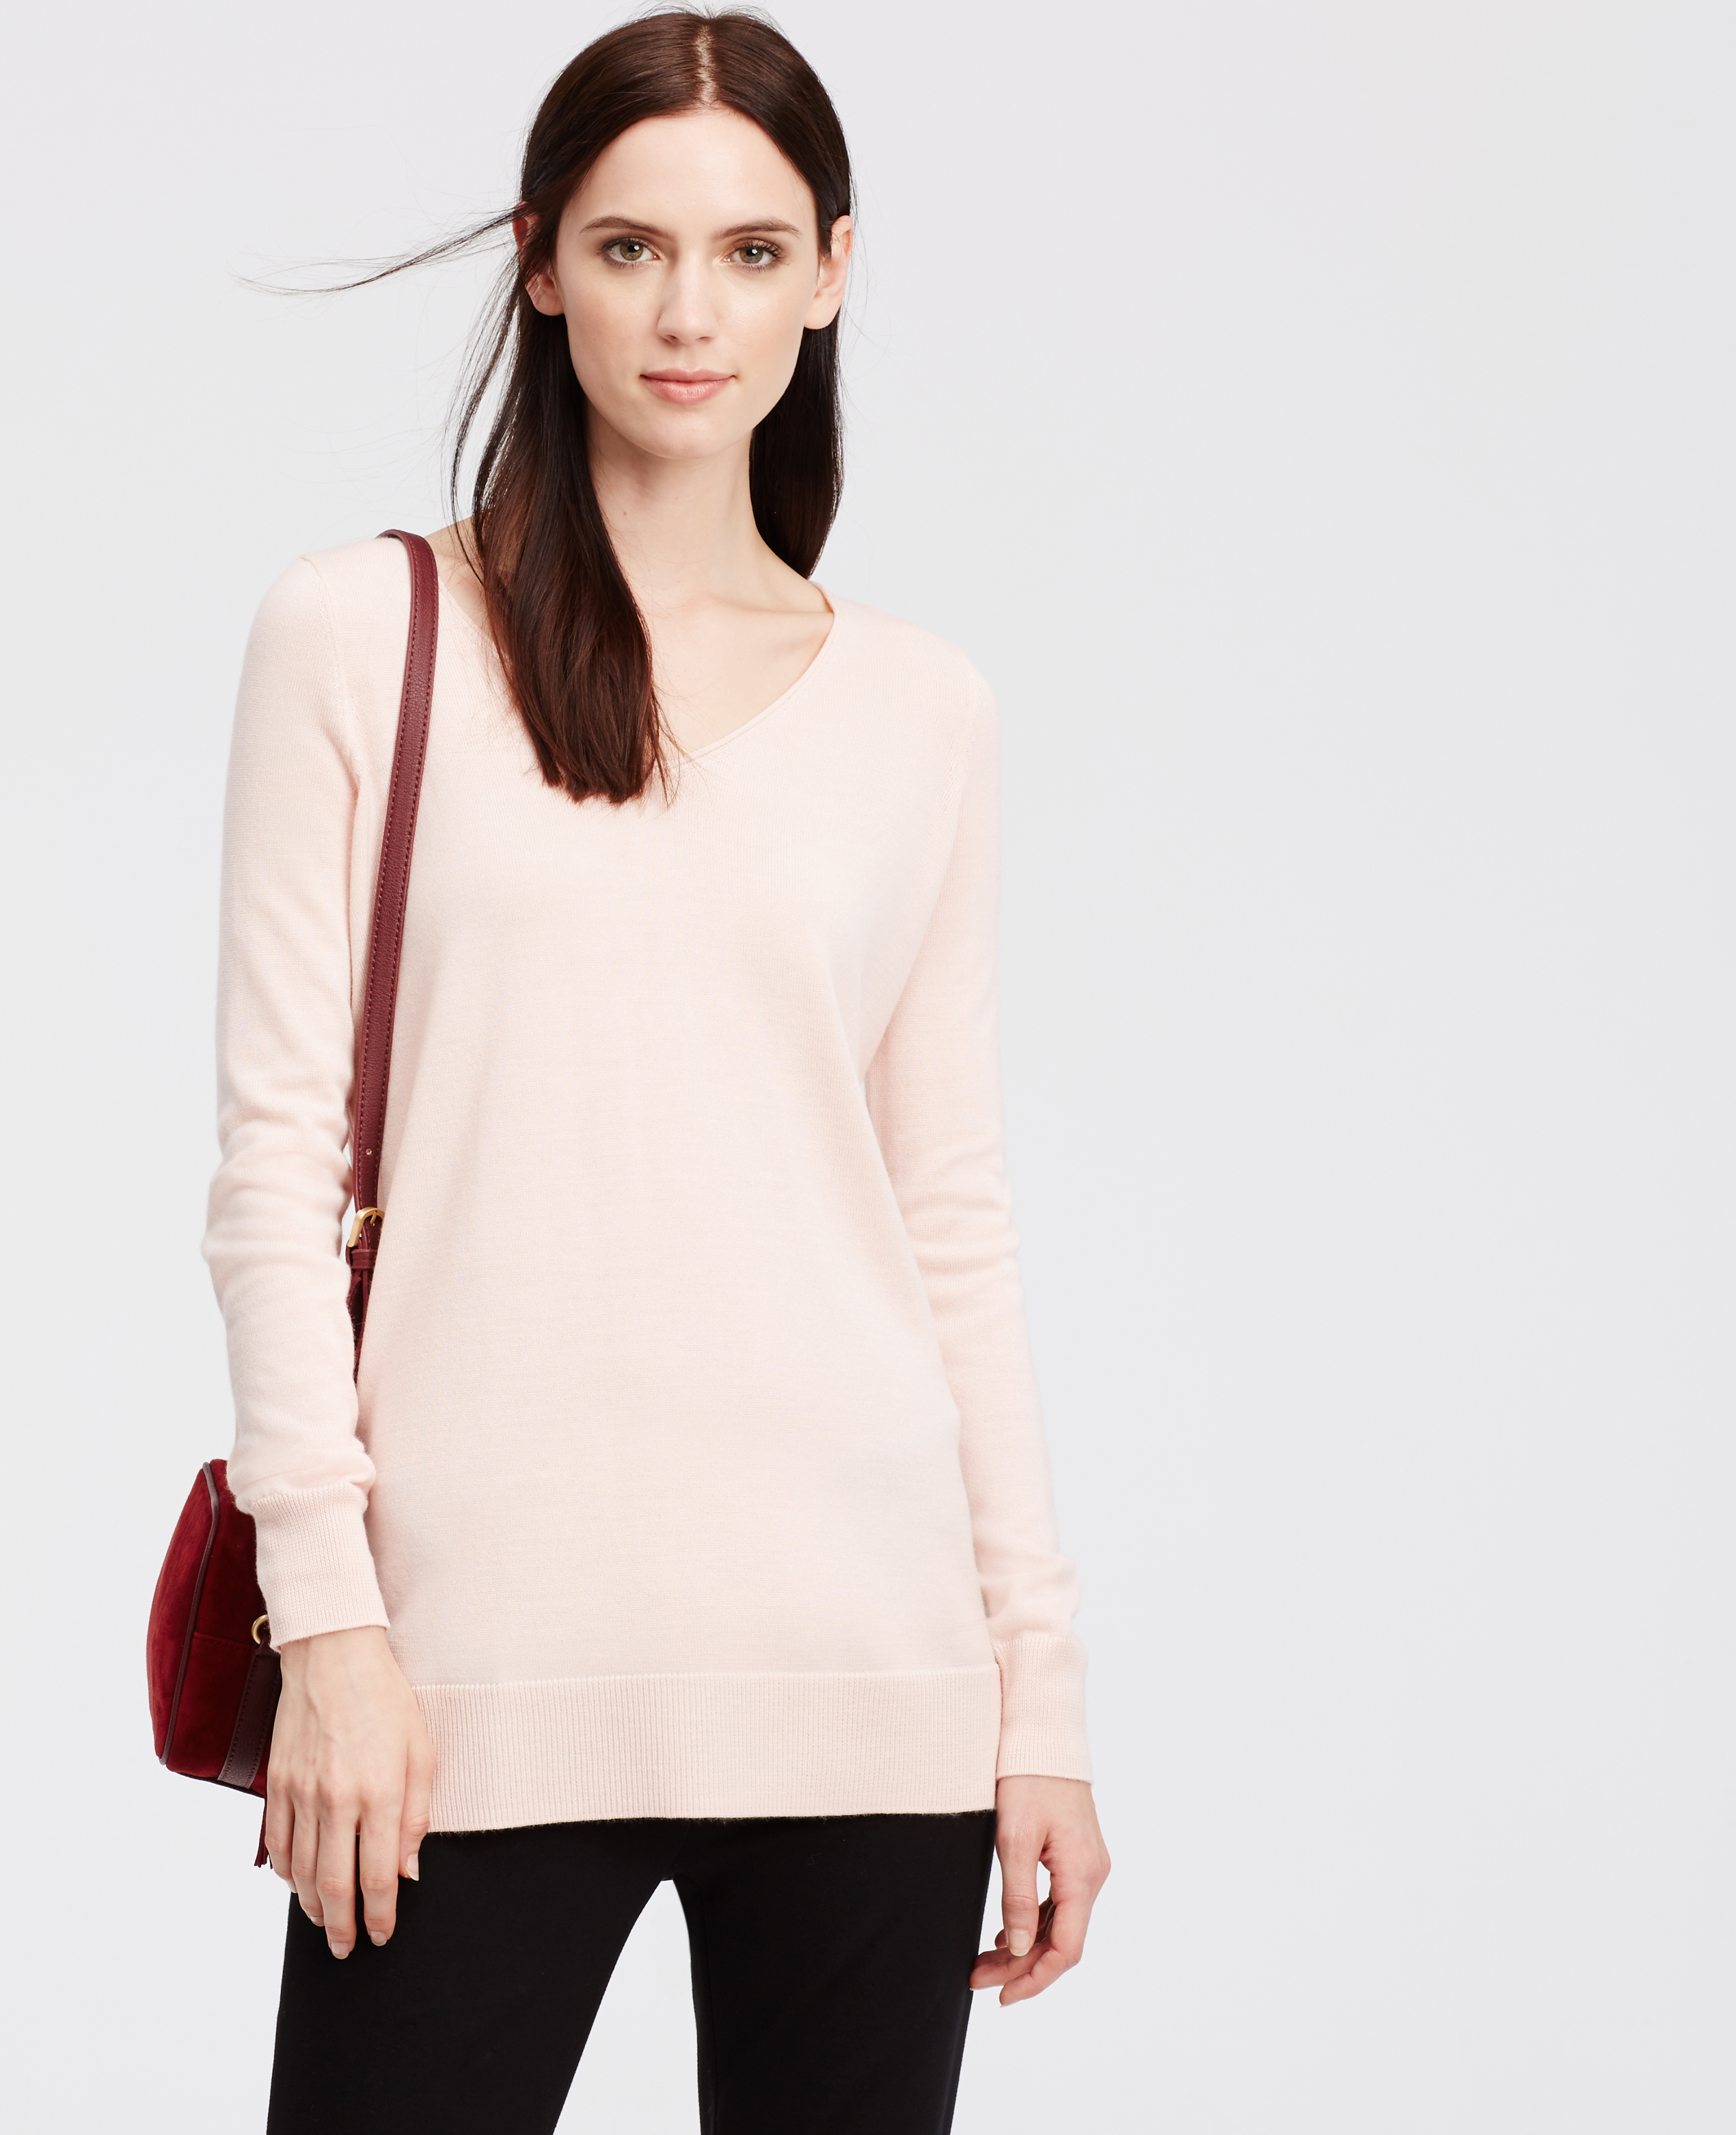 Ann taylor Petite V-neck Tunic Sweater in Pink | Lyst